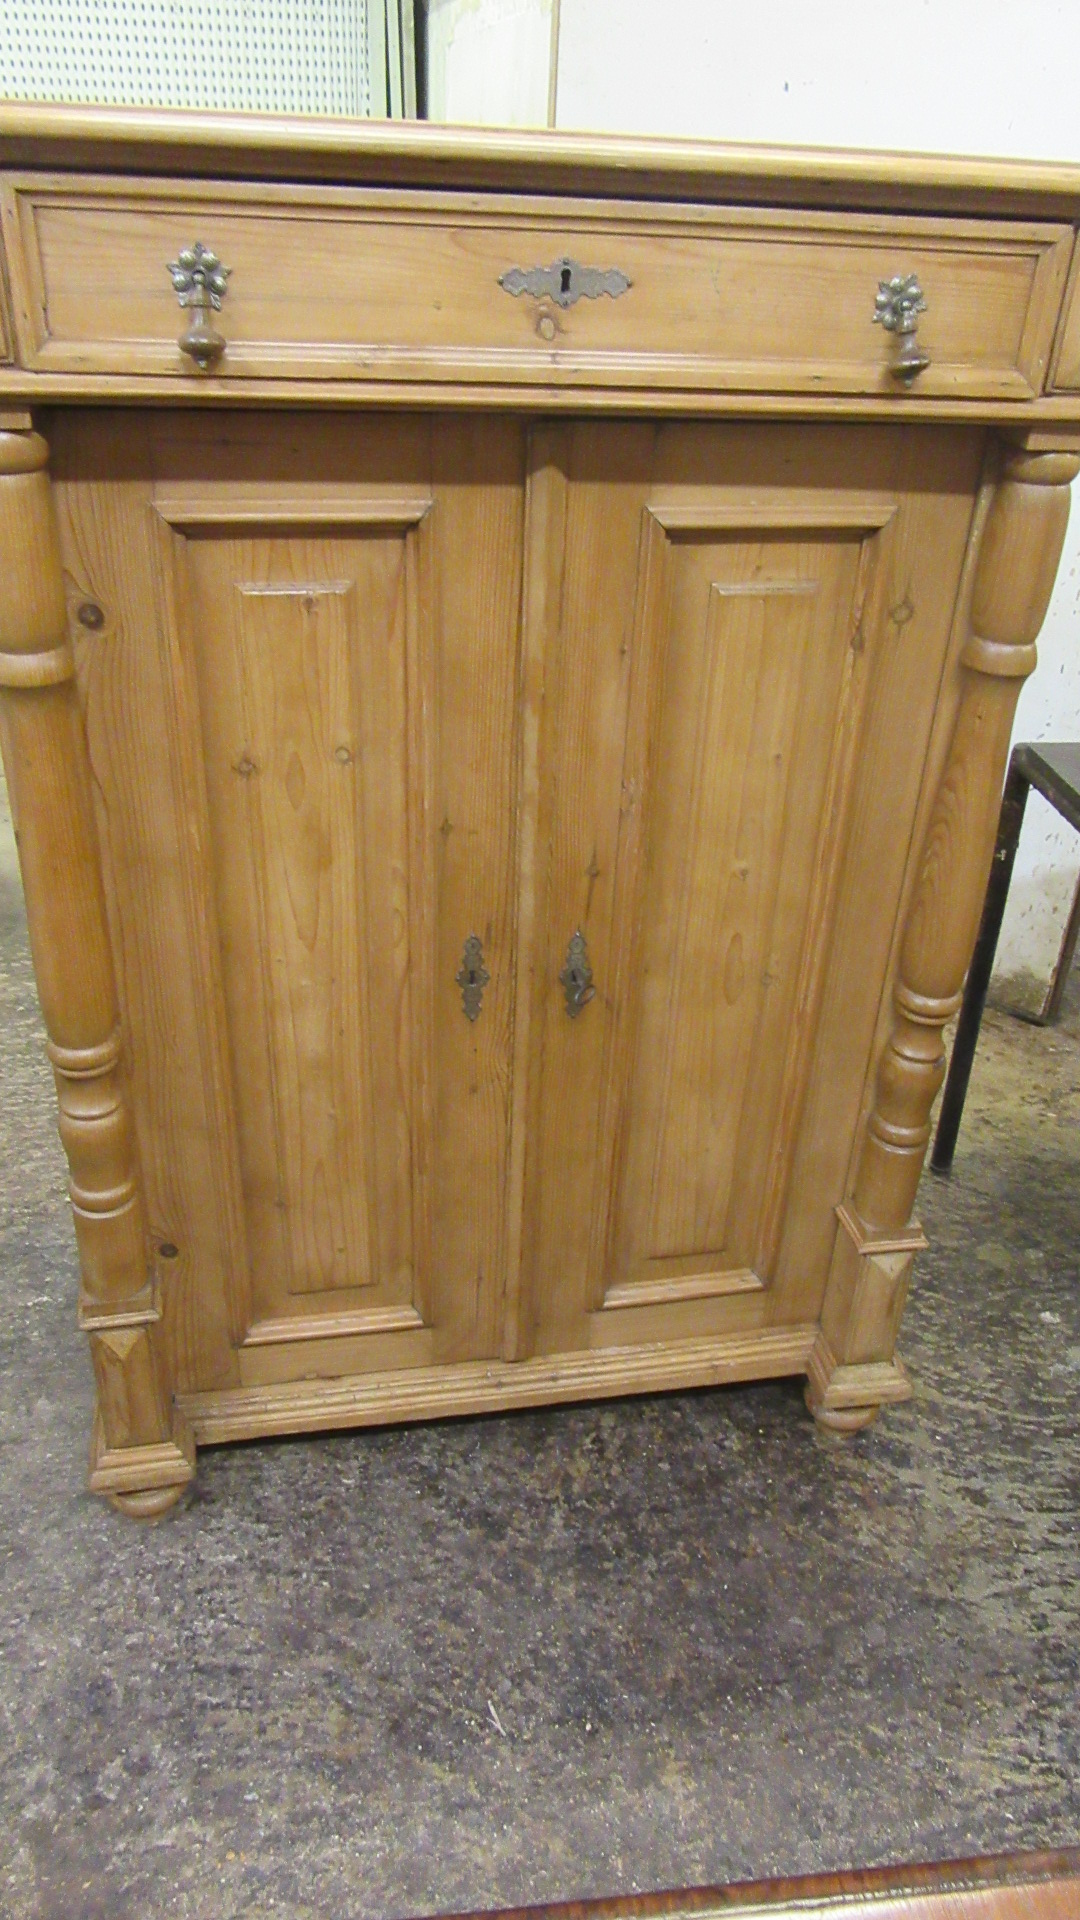 ANTIQUE EUROPEAN PINE CUPBOARD